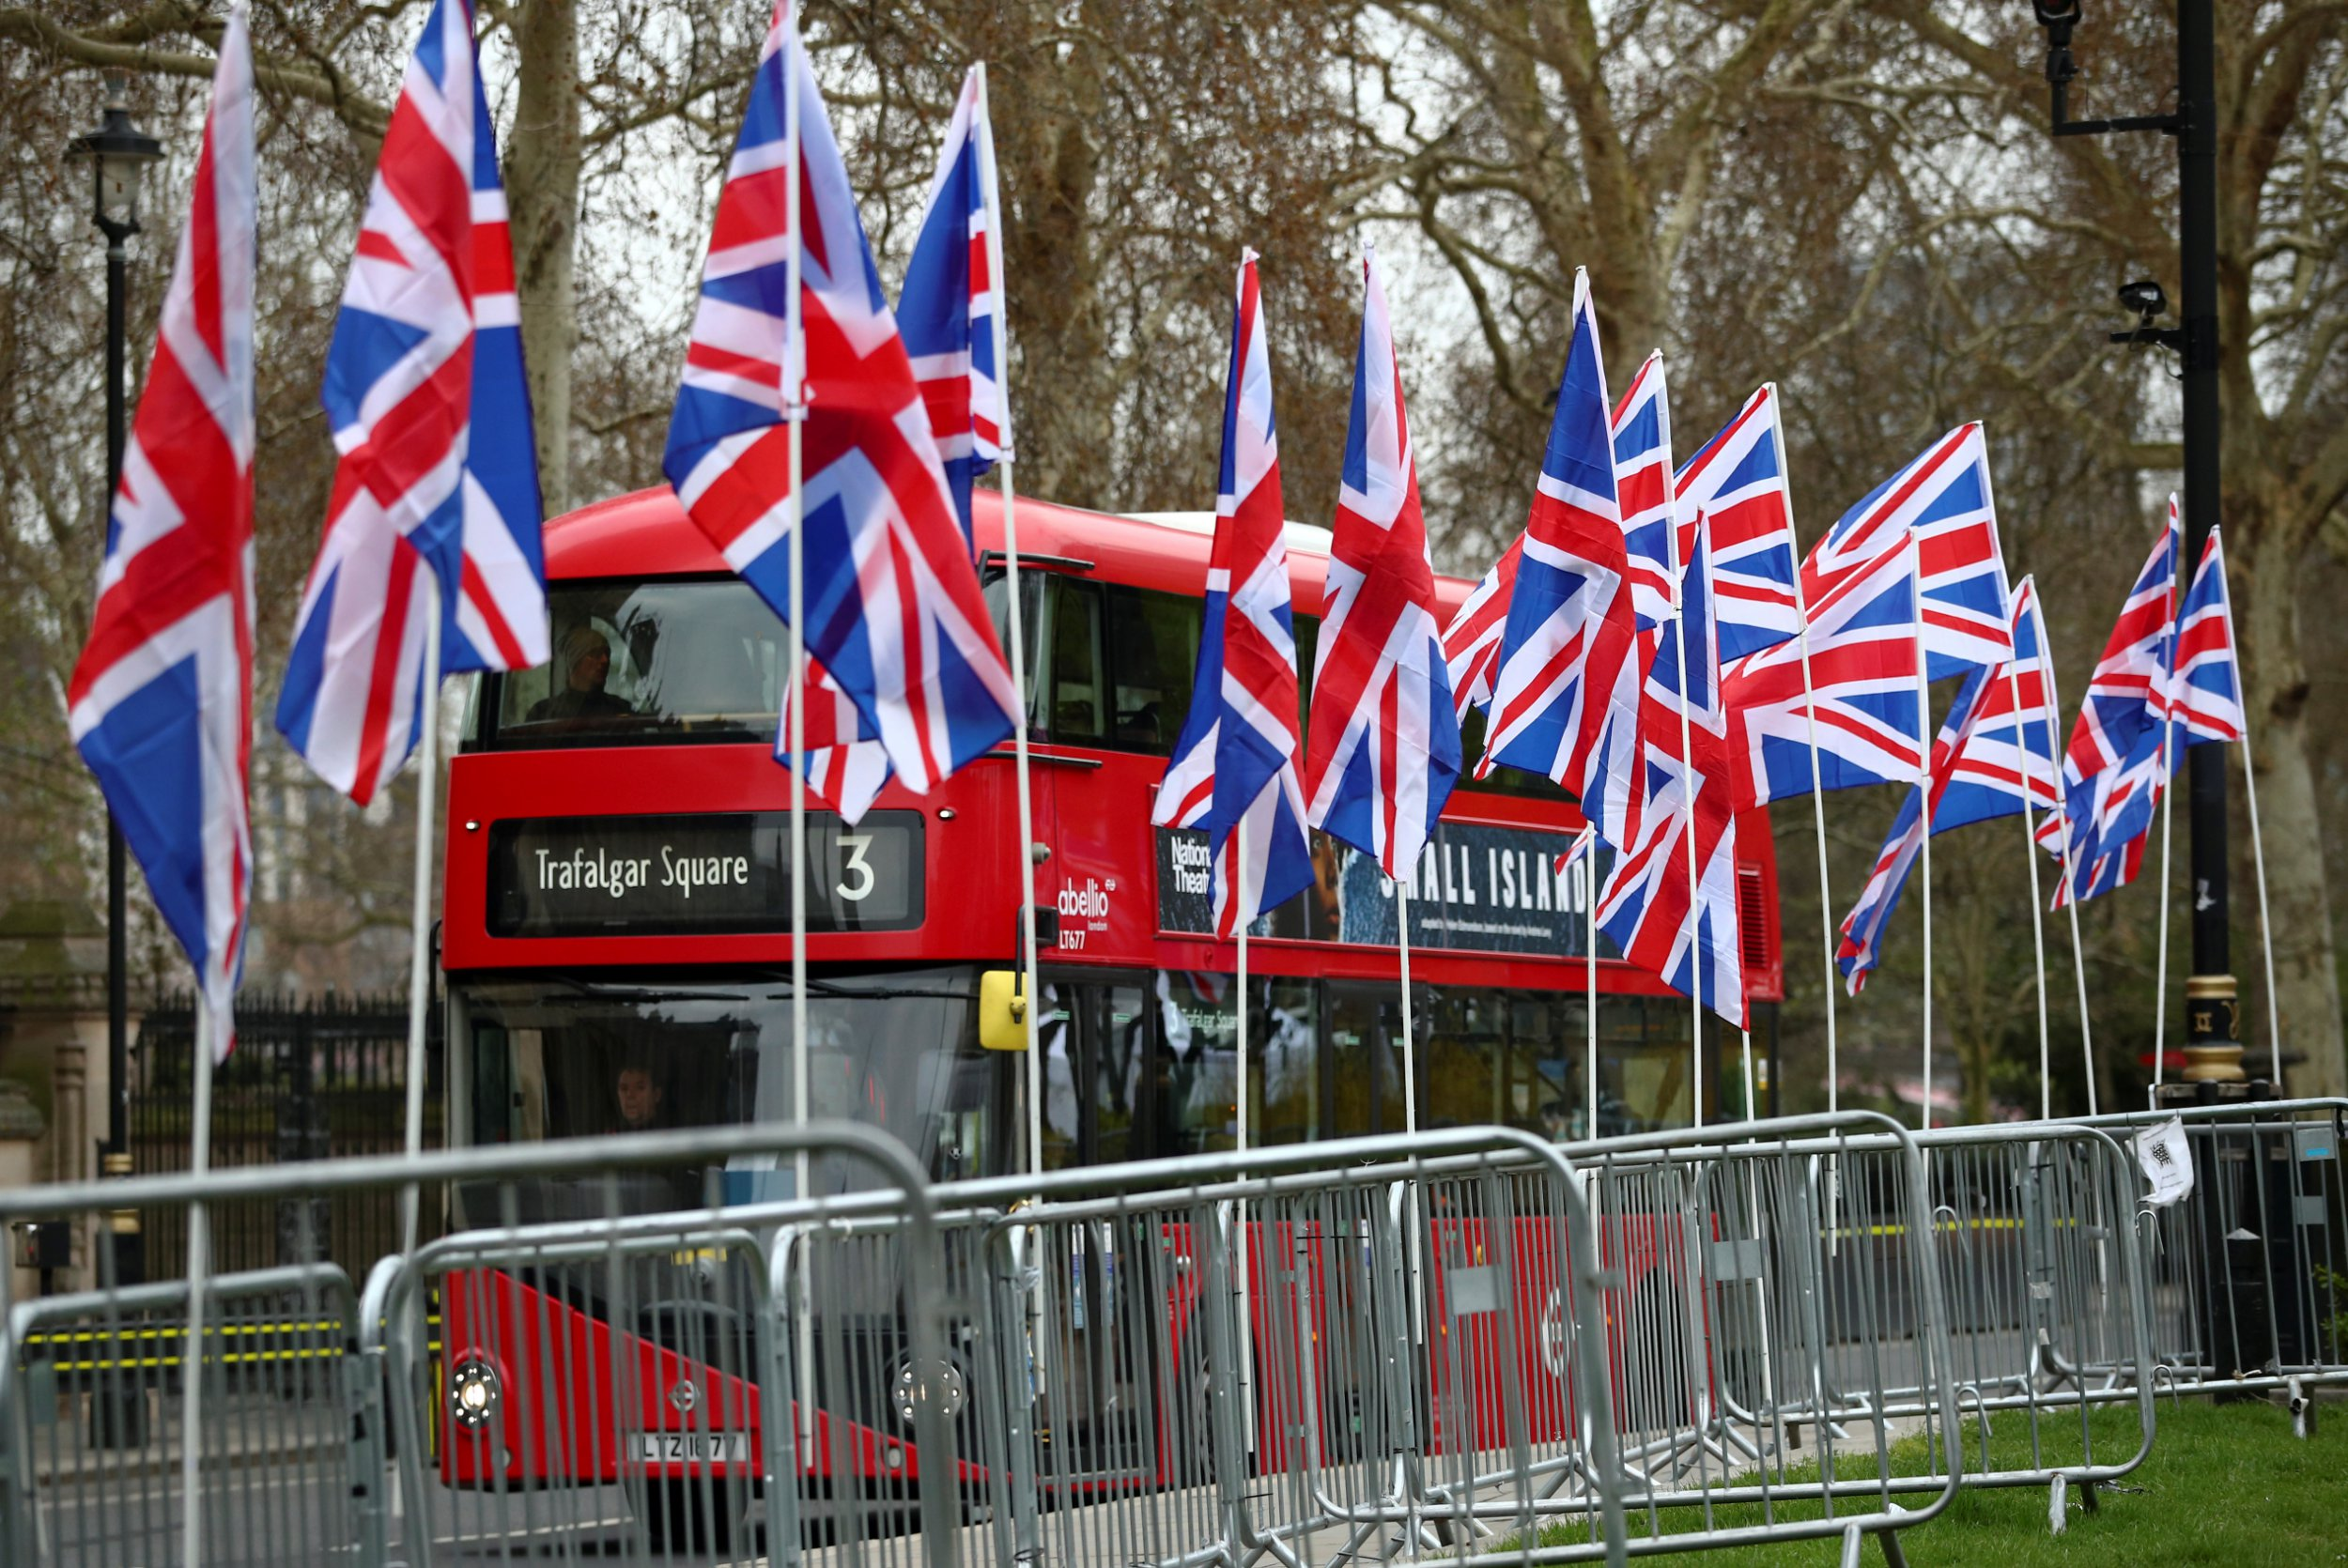 A double-decker bus passes by Union Jack flags displayed by pro-Brexit supporters outside the Houses of Parliament, following the Brexit votes the previous evening, in London, Britain, March 28, 2019. REUTERS/Hannah McKay